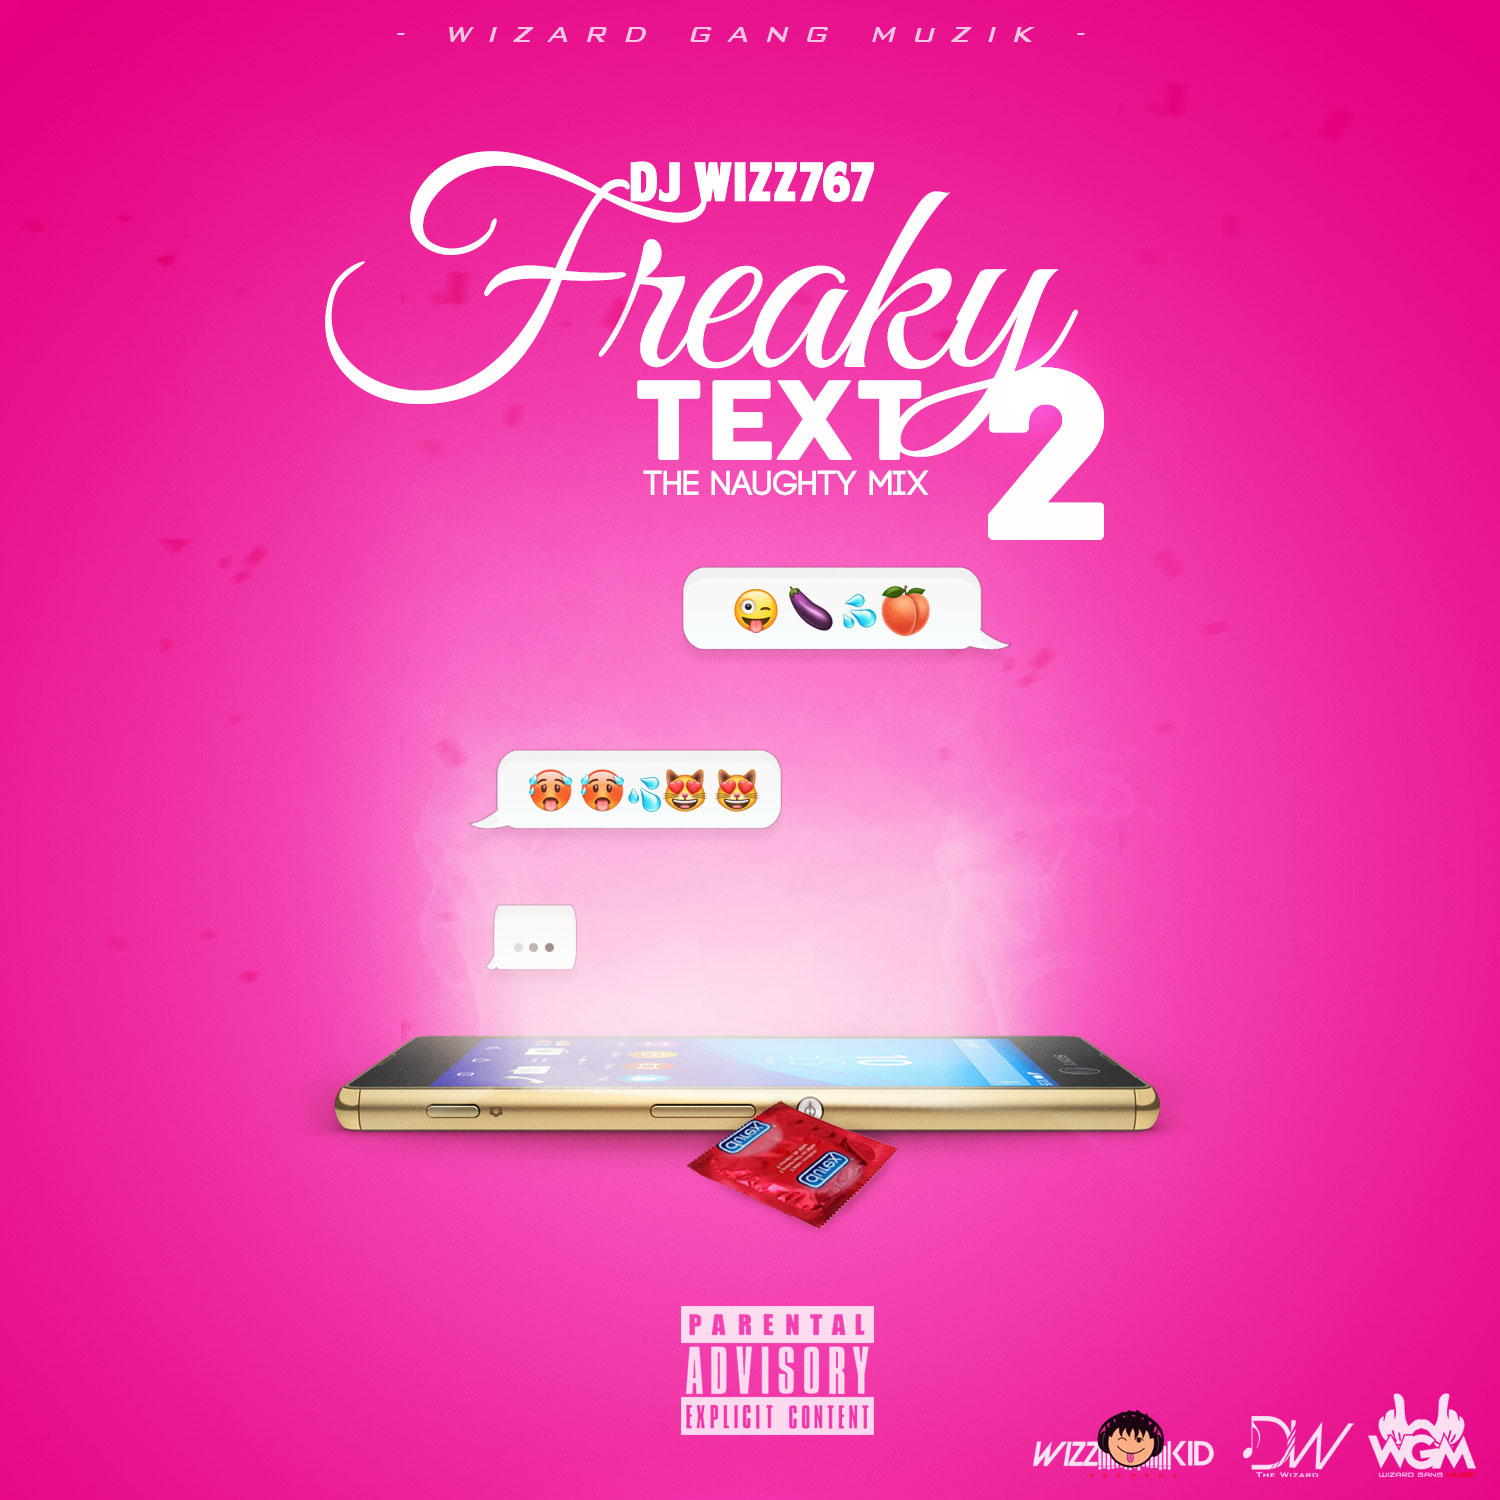 Dj Wizz767 – FREAKY TEXT 2 (THE NAUGHTY MIX)